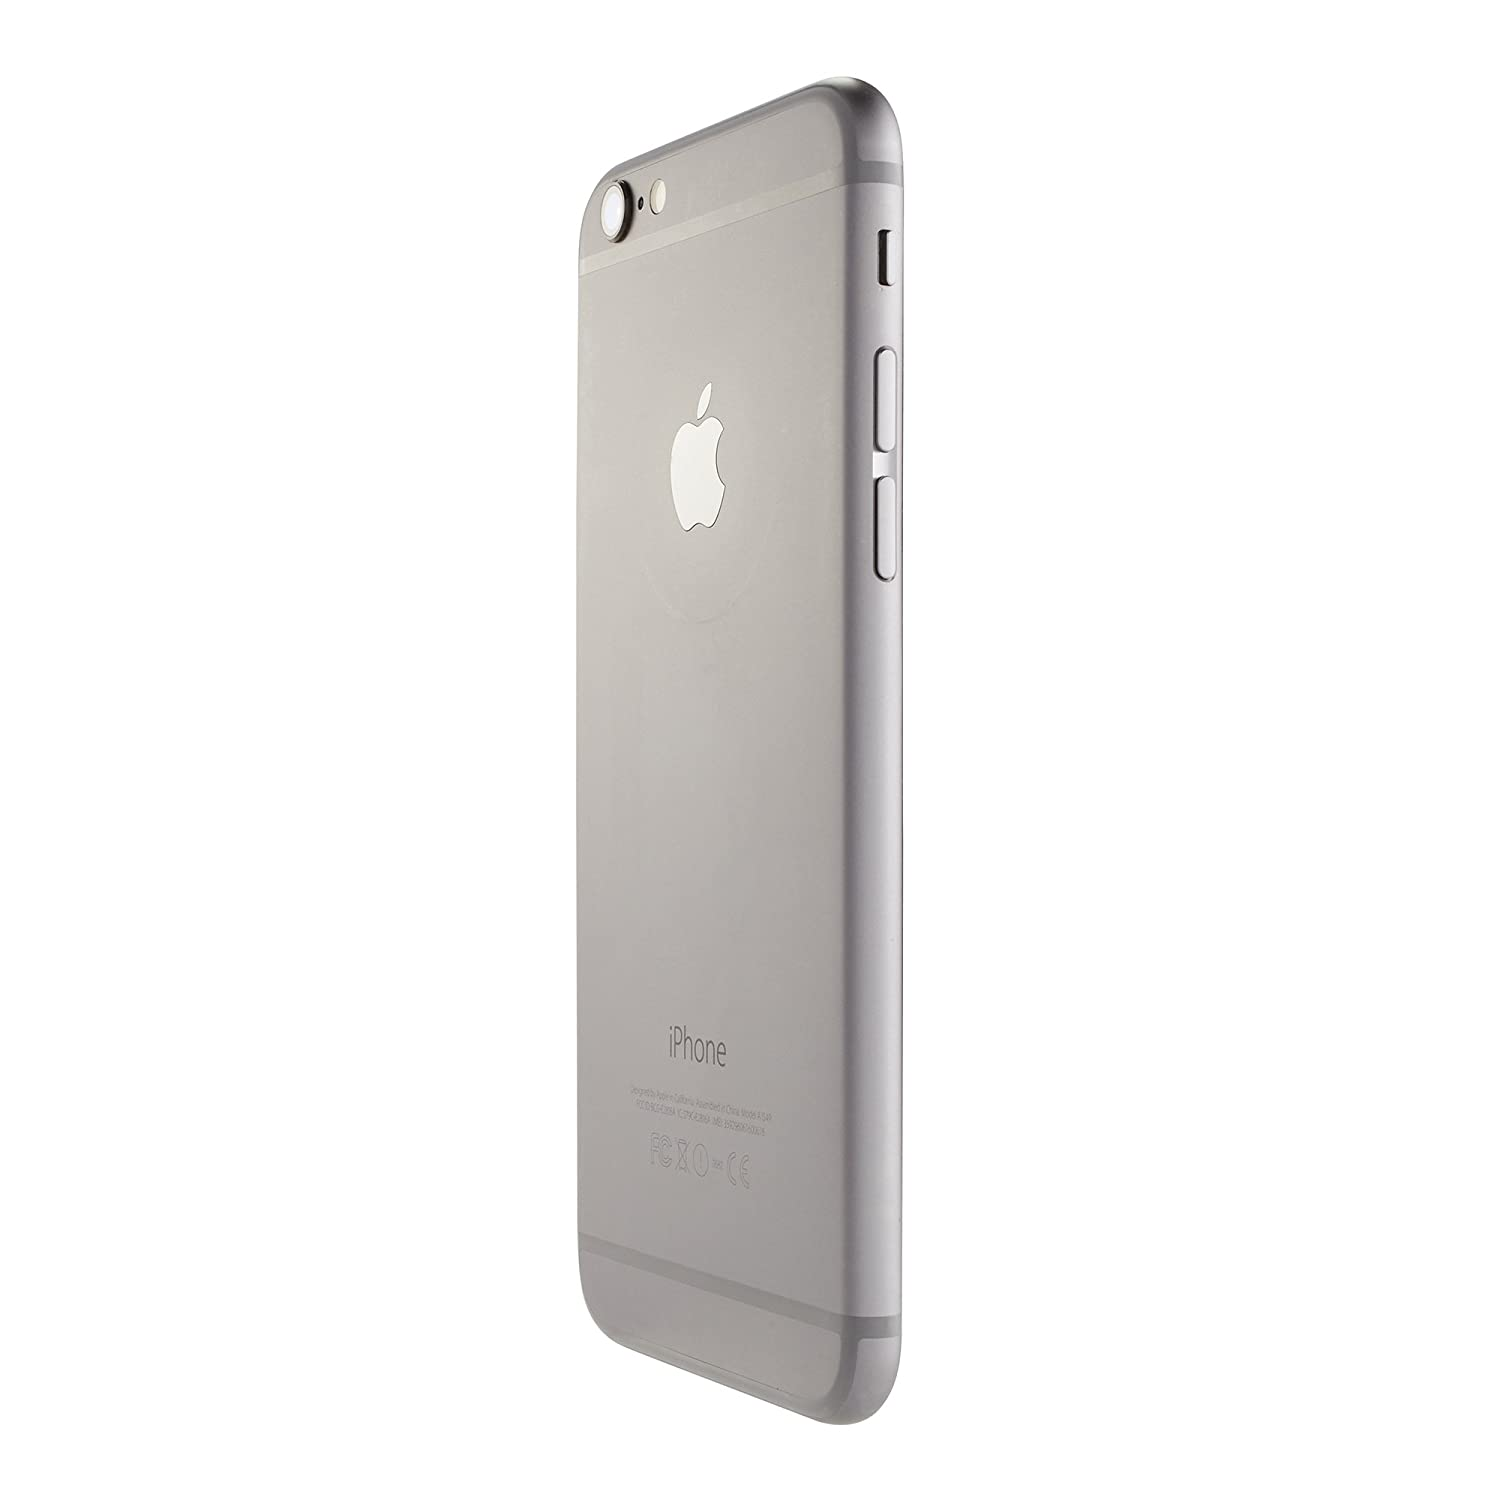 Apple Iphone 6 Att 64gb Space Gray Refurbished Refrubish Free Tempered Glass Cell Phones Accessories